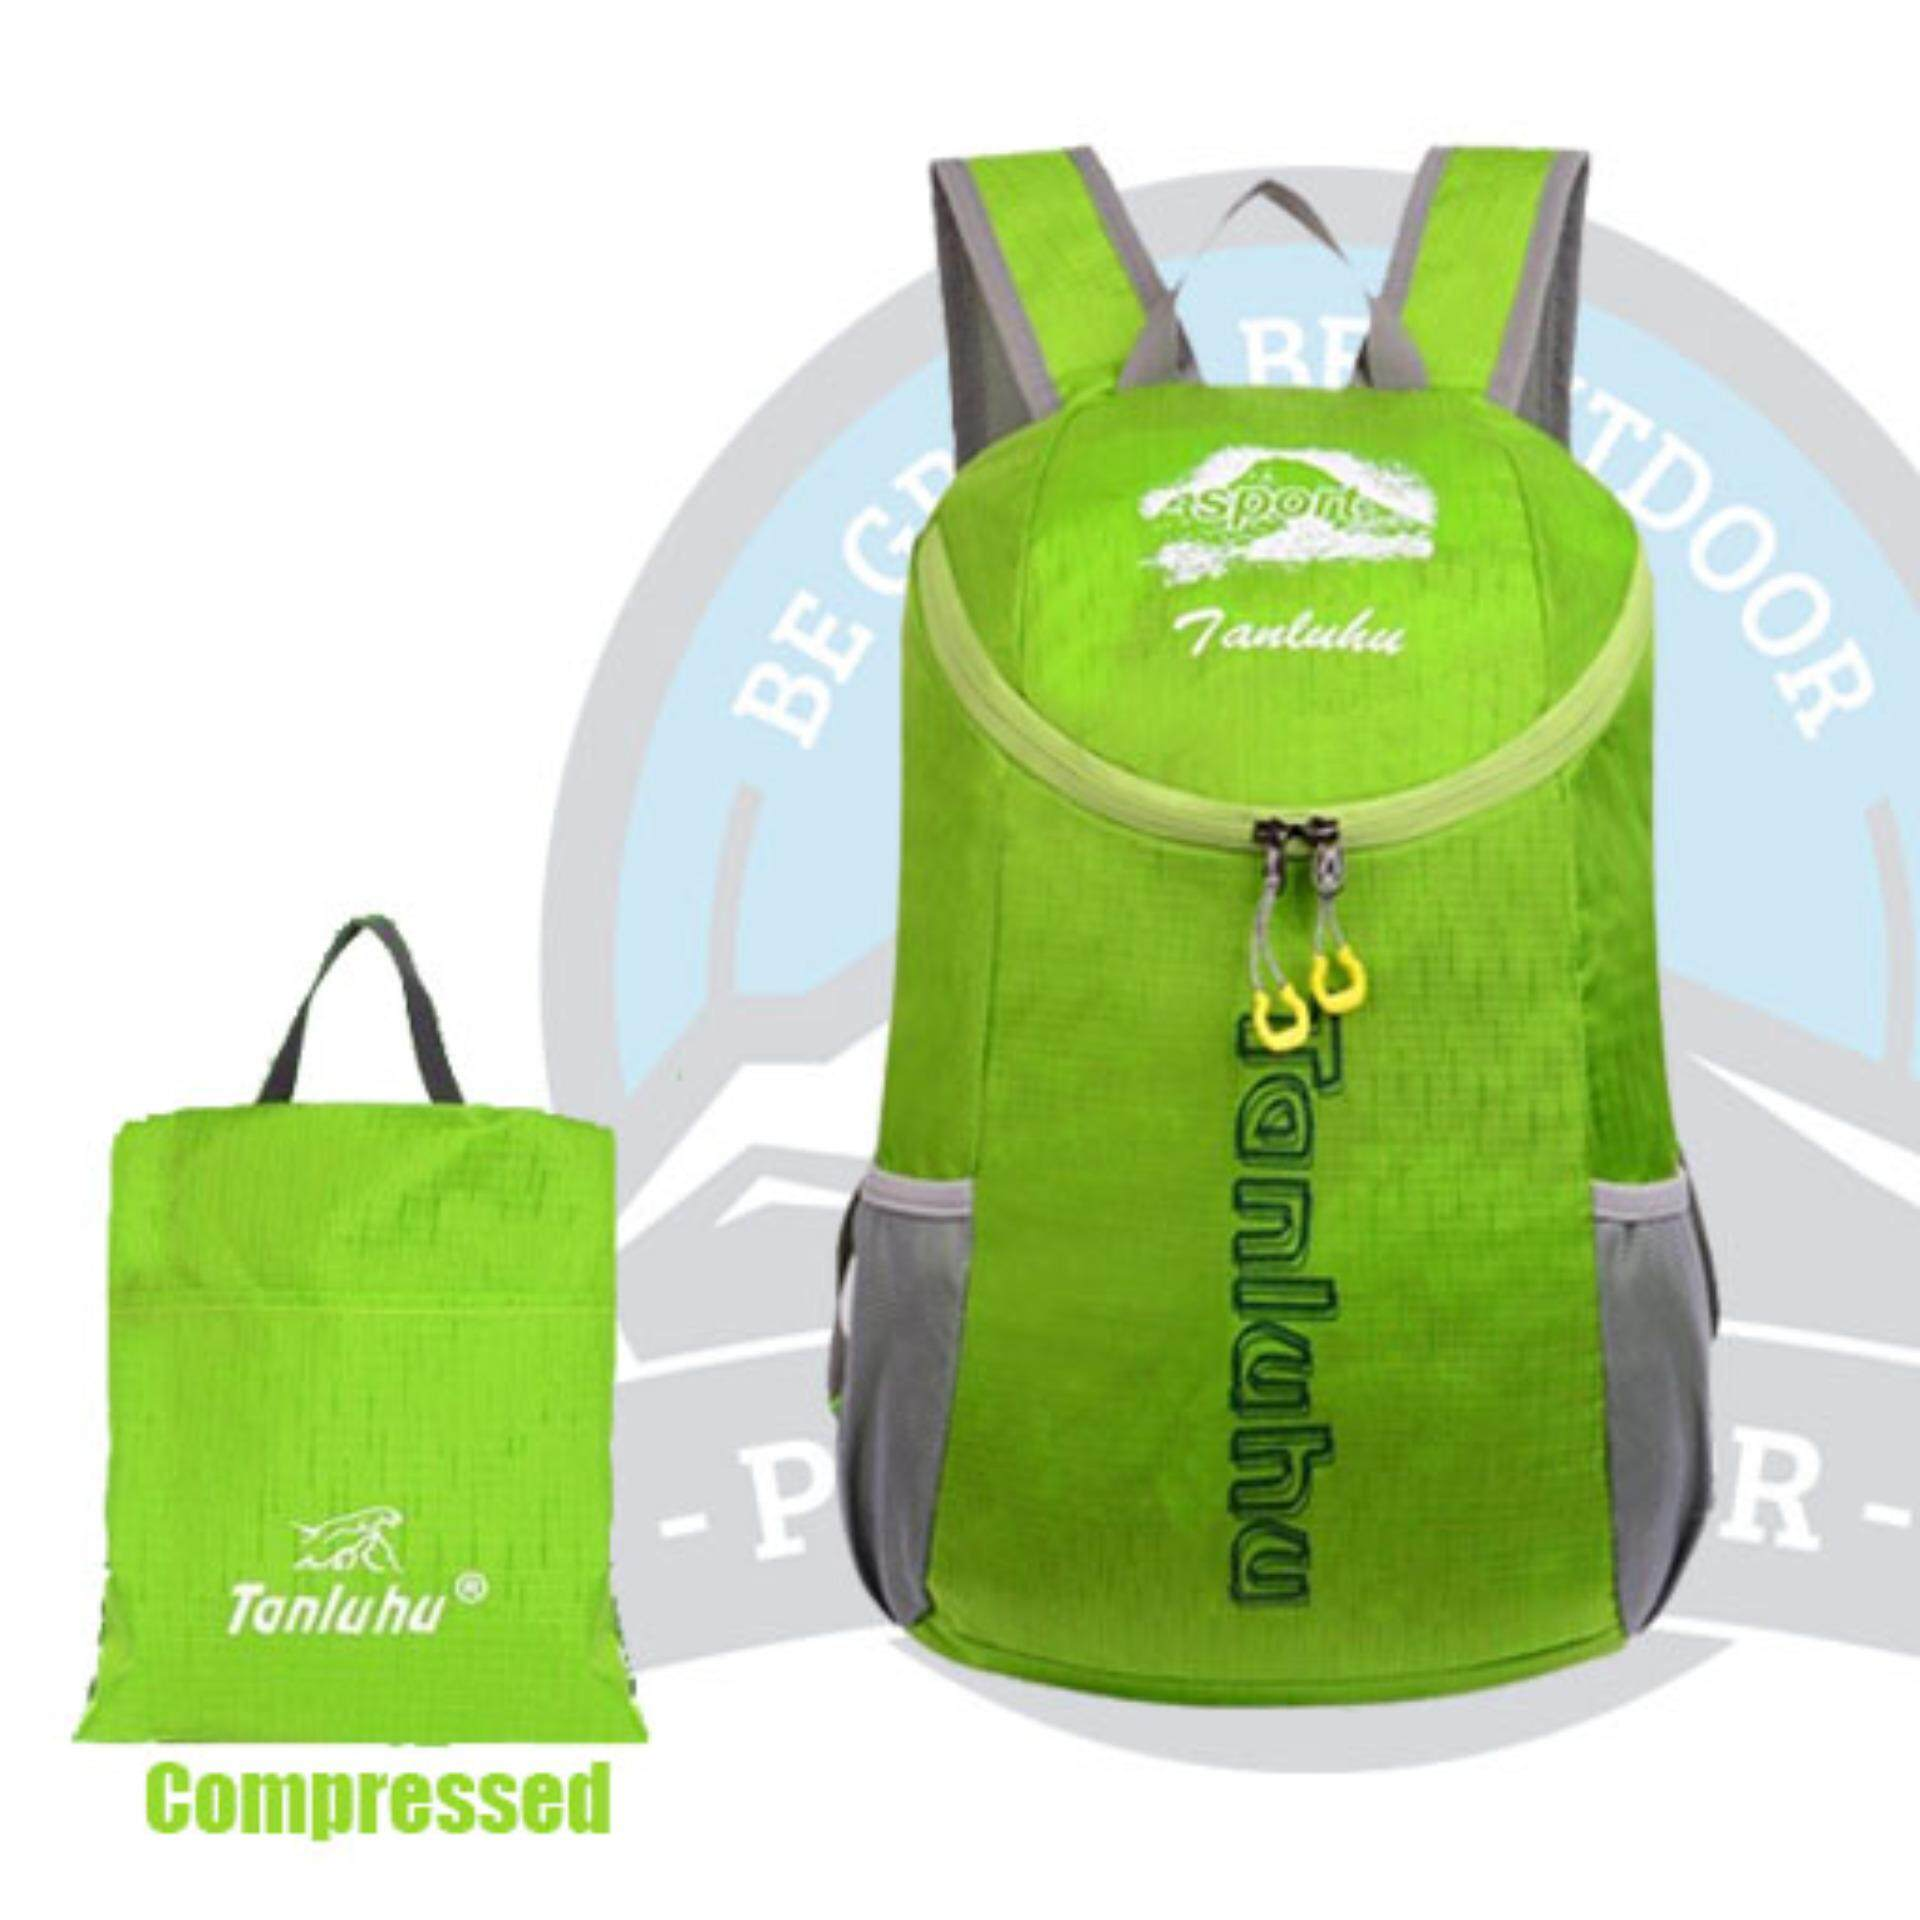 [CLEARANCE SALE] (FREE DELIVERY) Tanluhu 25L Travel Backpack Travel Bag Water Resitant Foldable Outdoor Bagpack - GREEN